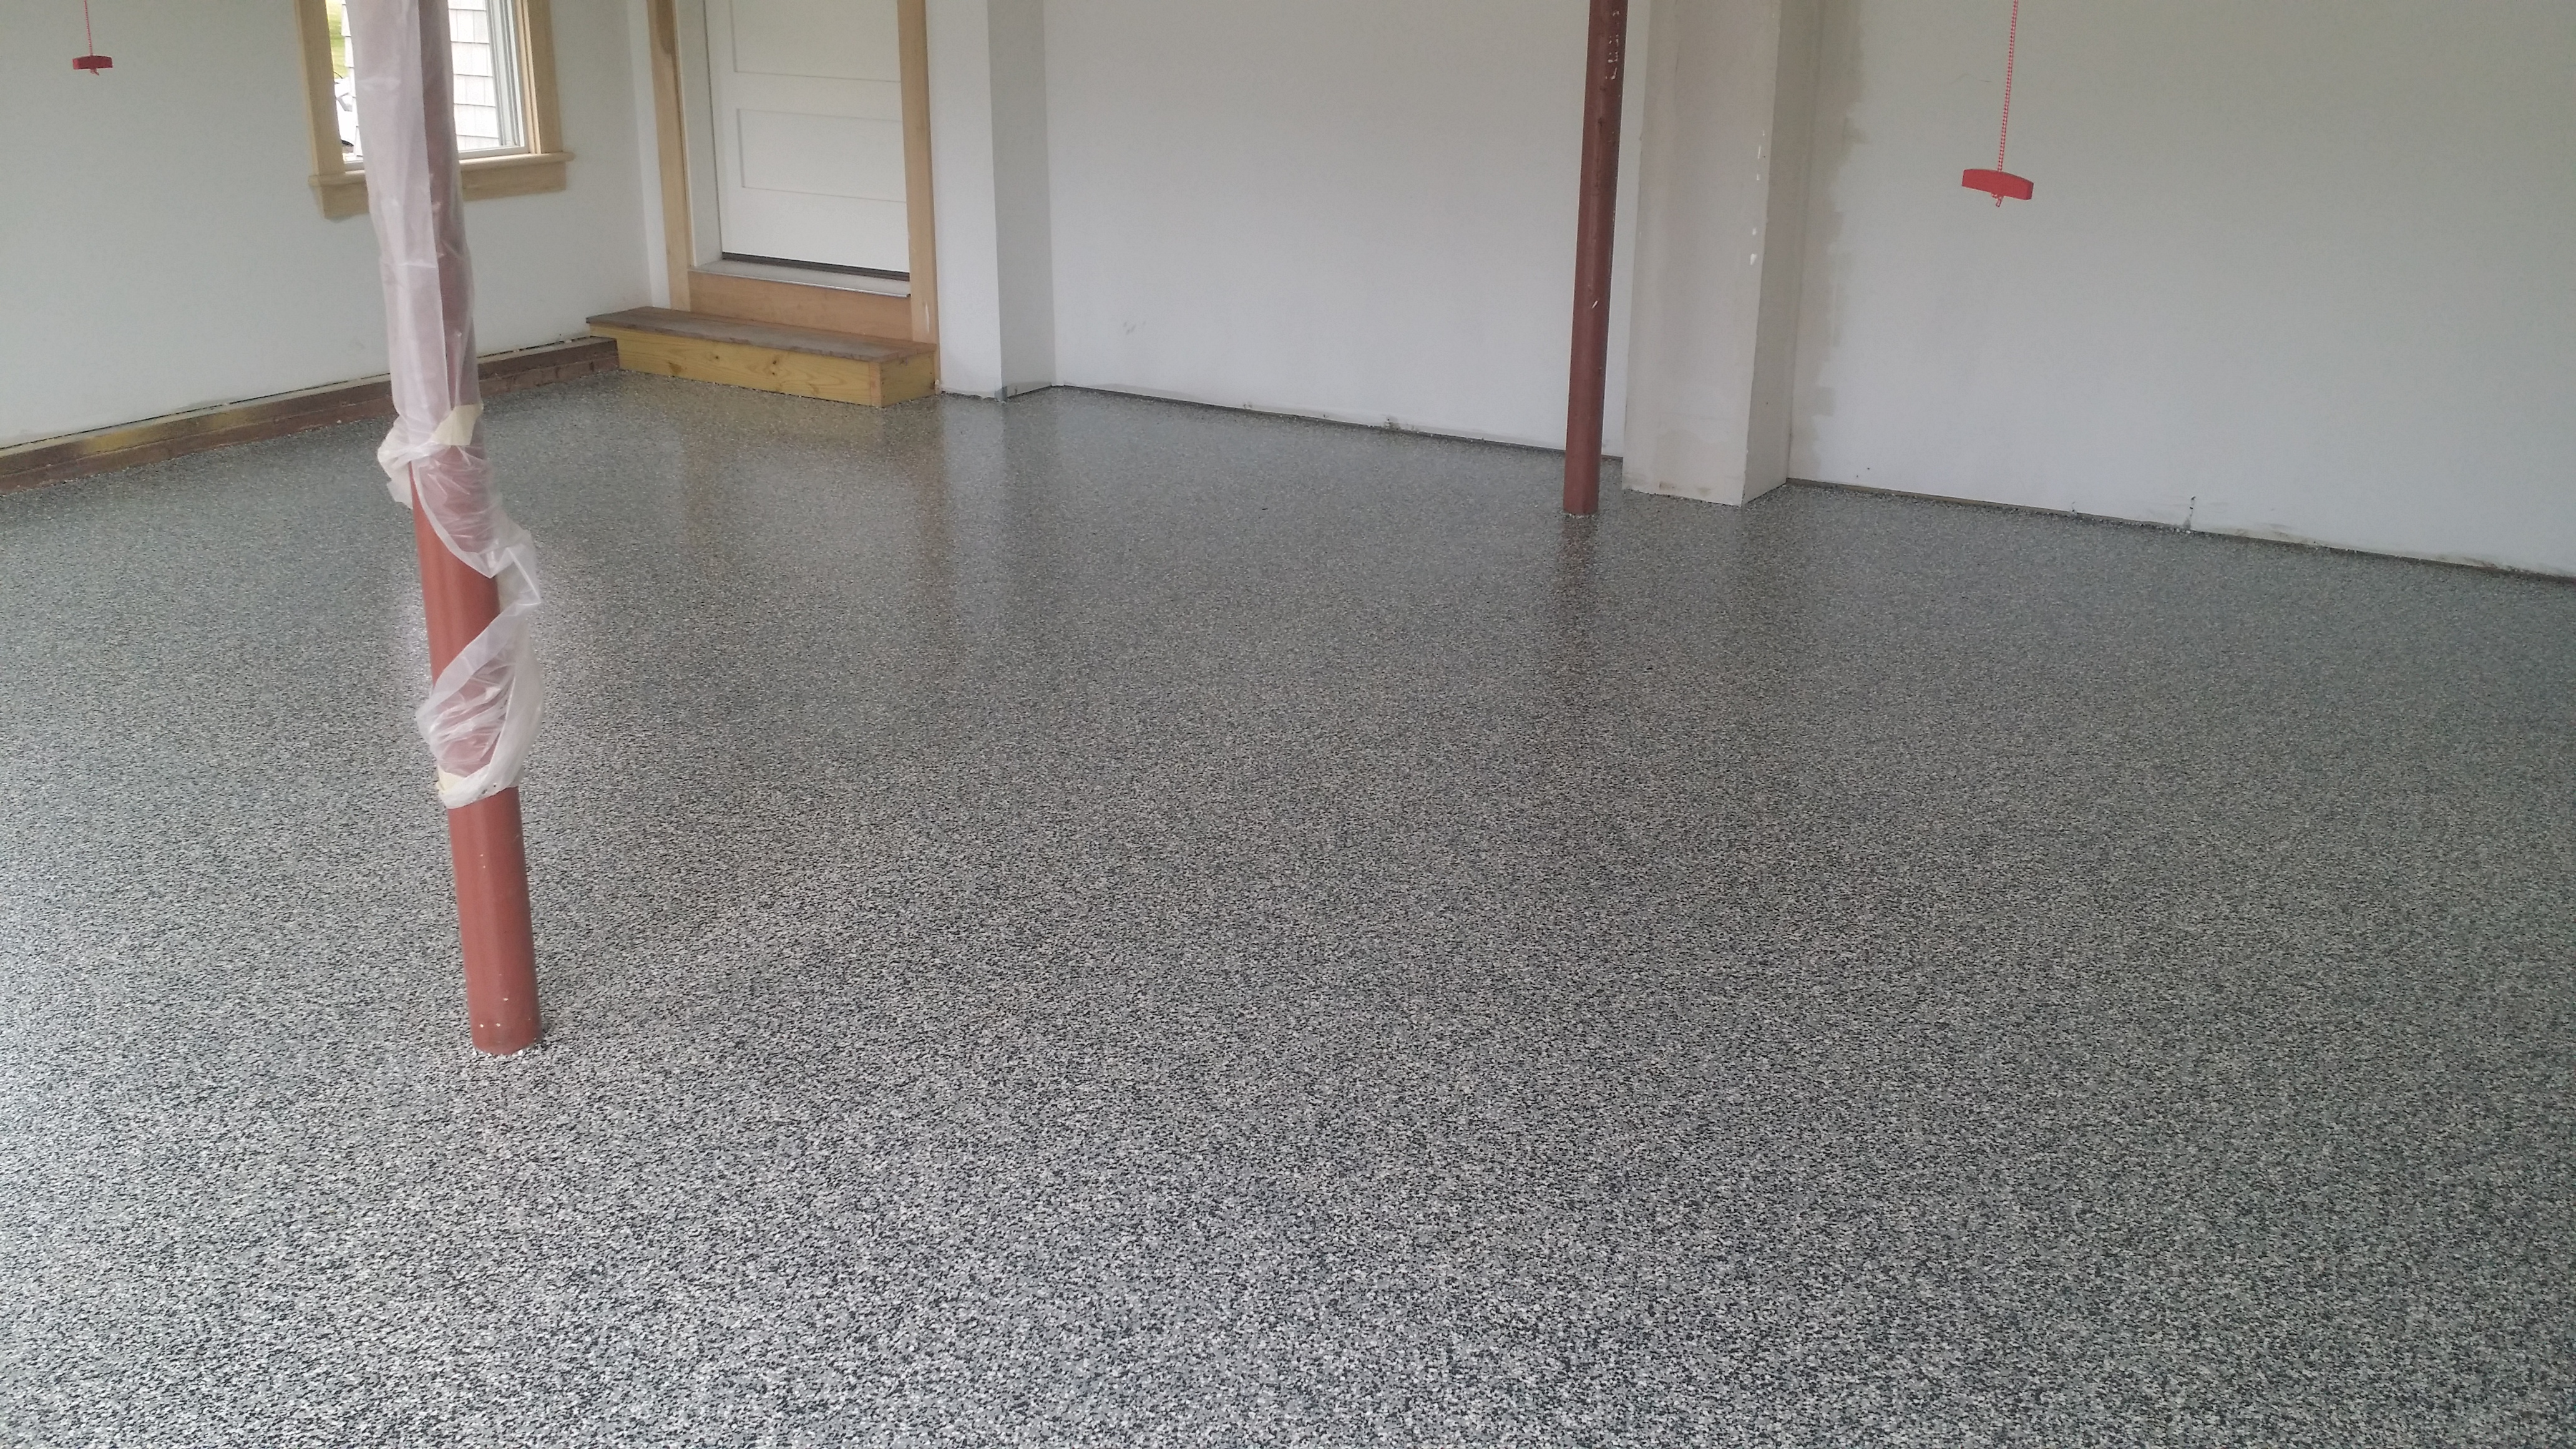 dfw fort professional flooring floor garage dallas prevent peeling no diy versus epoxy floors and worth